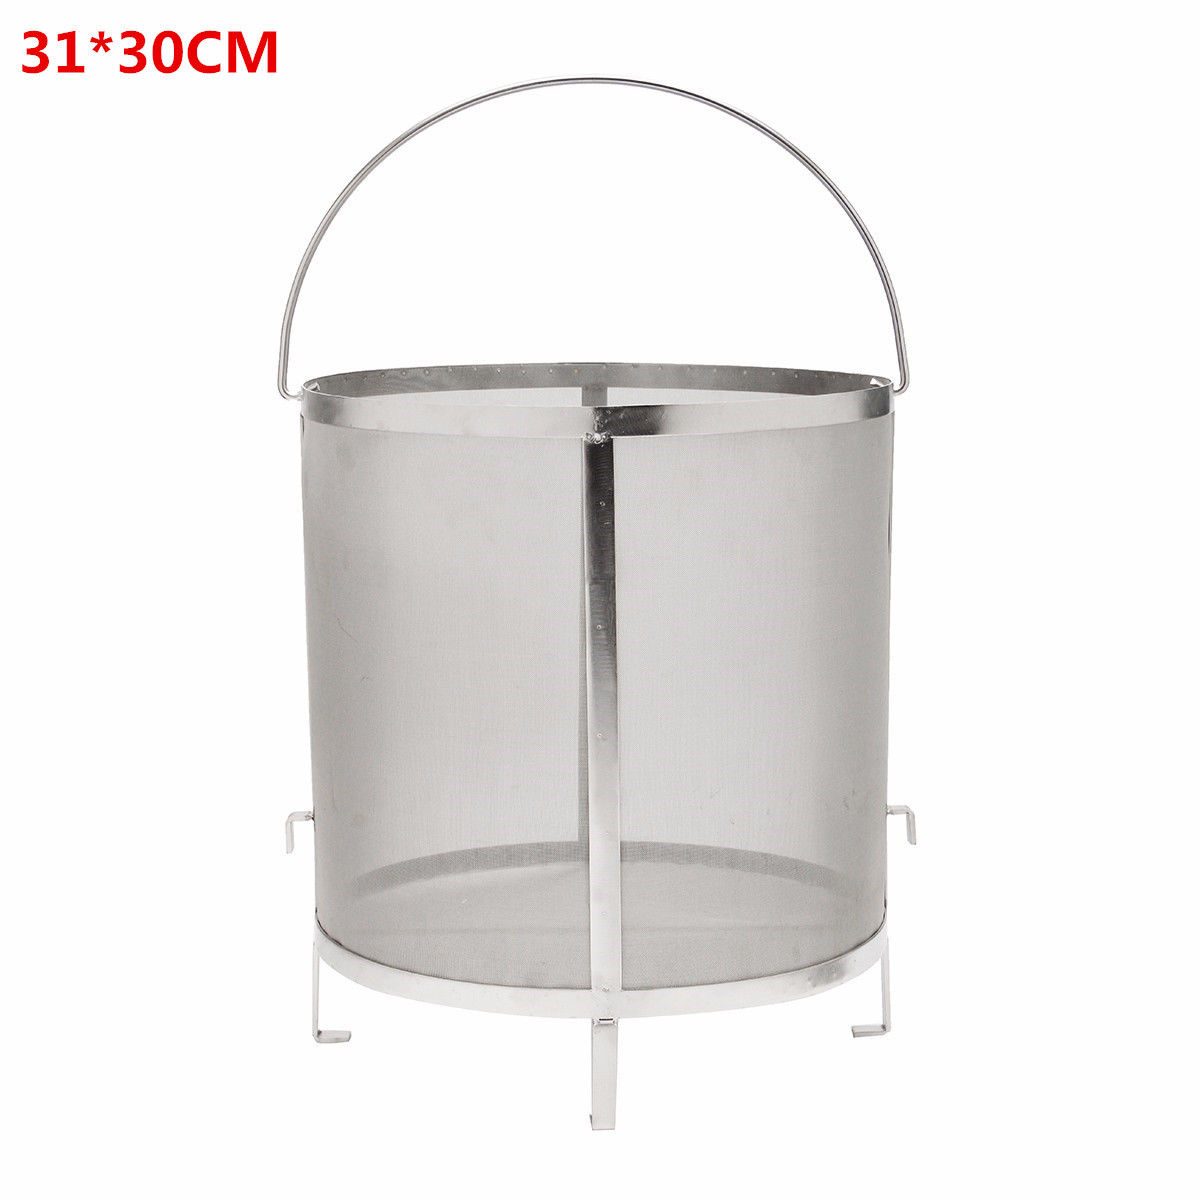 Stainless steel metal liquid filter,home beer brewing kettle filter,wine <strong>filtration</strong>